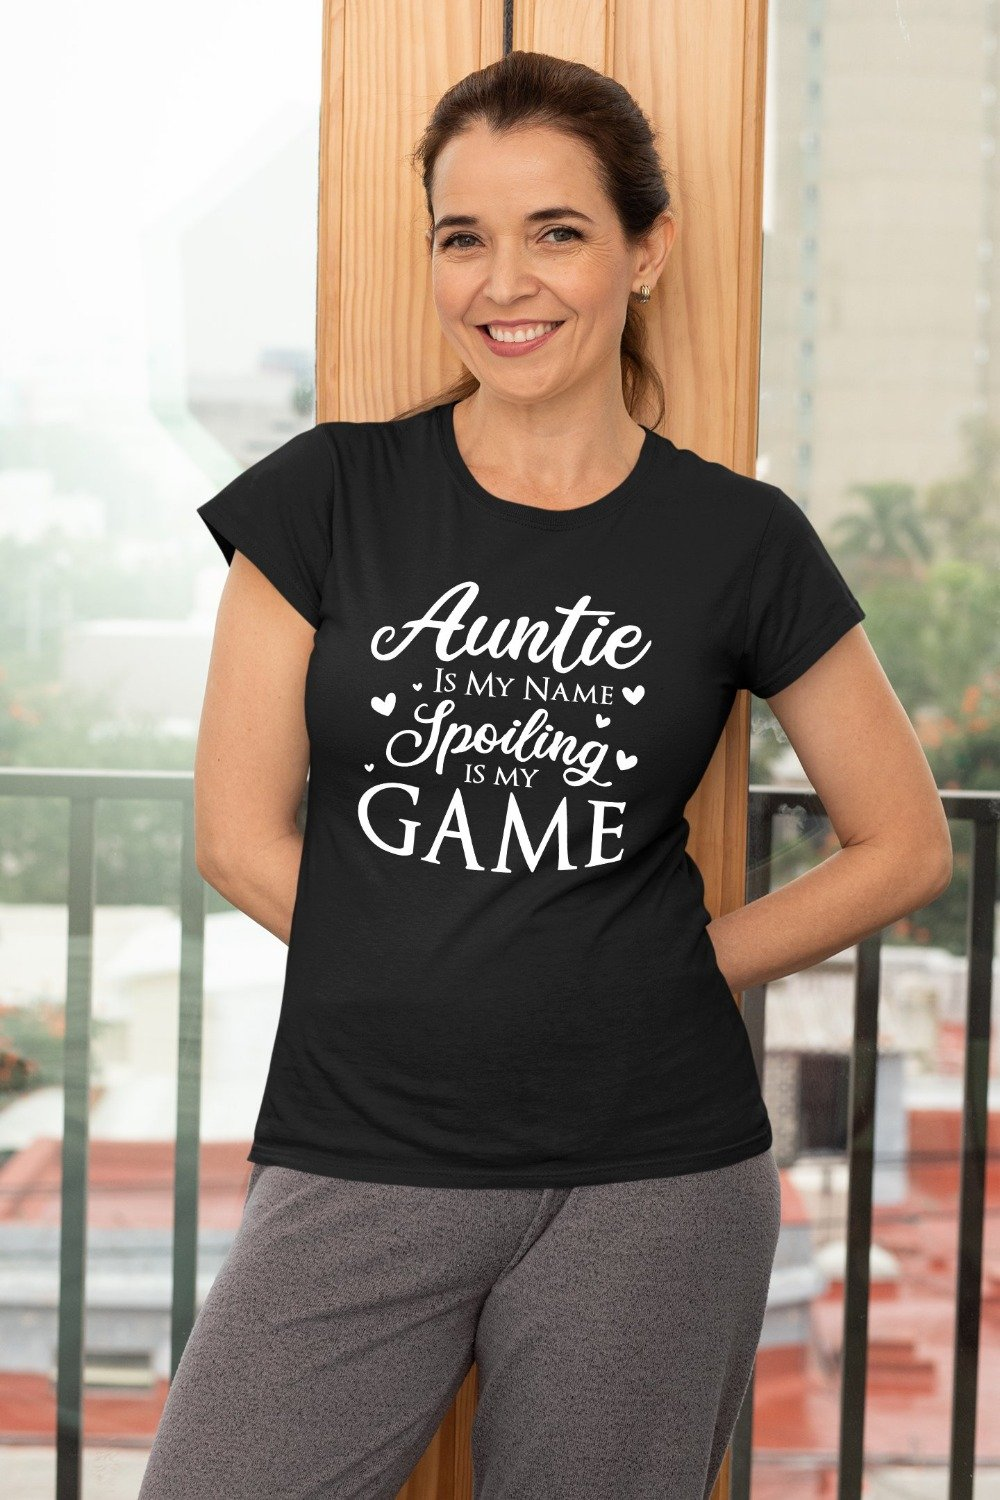 Auntie Is My Name Spoiling Is My Game Funny Aunt T-Shirt